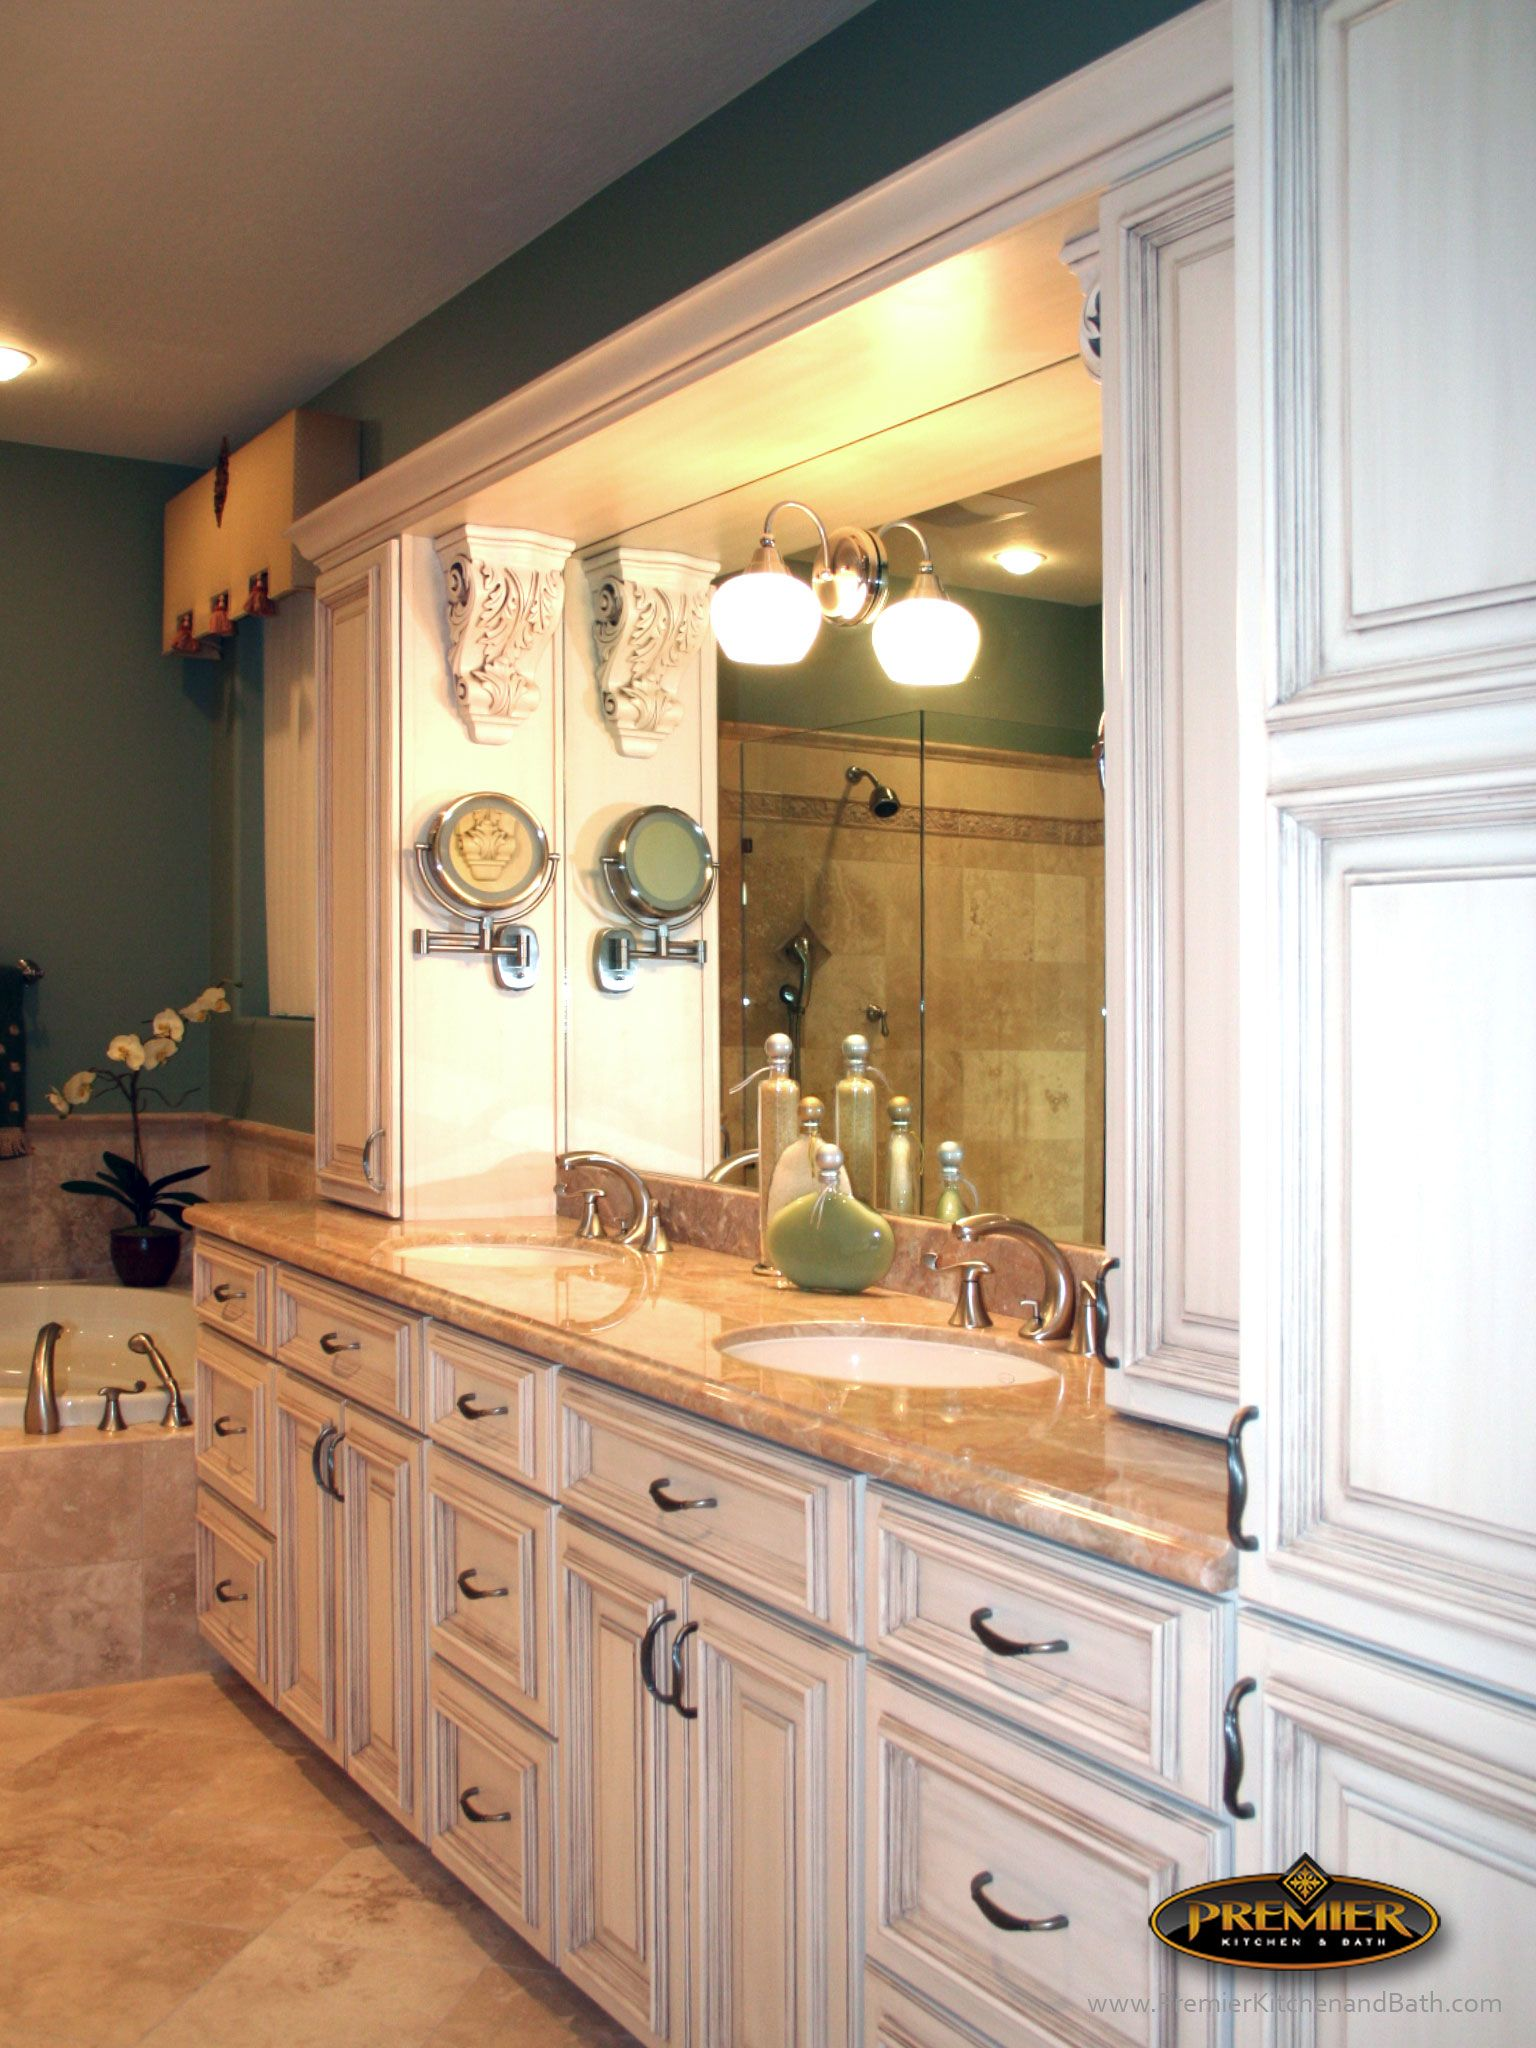 Your Next Home Remodel Starts Here... Complete Kitchen and Bath ...